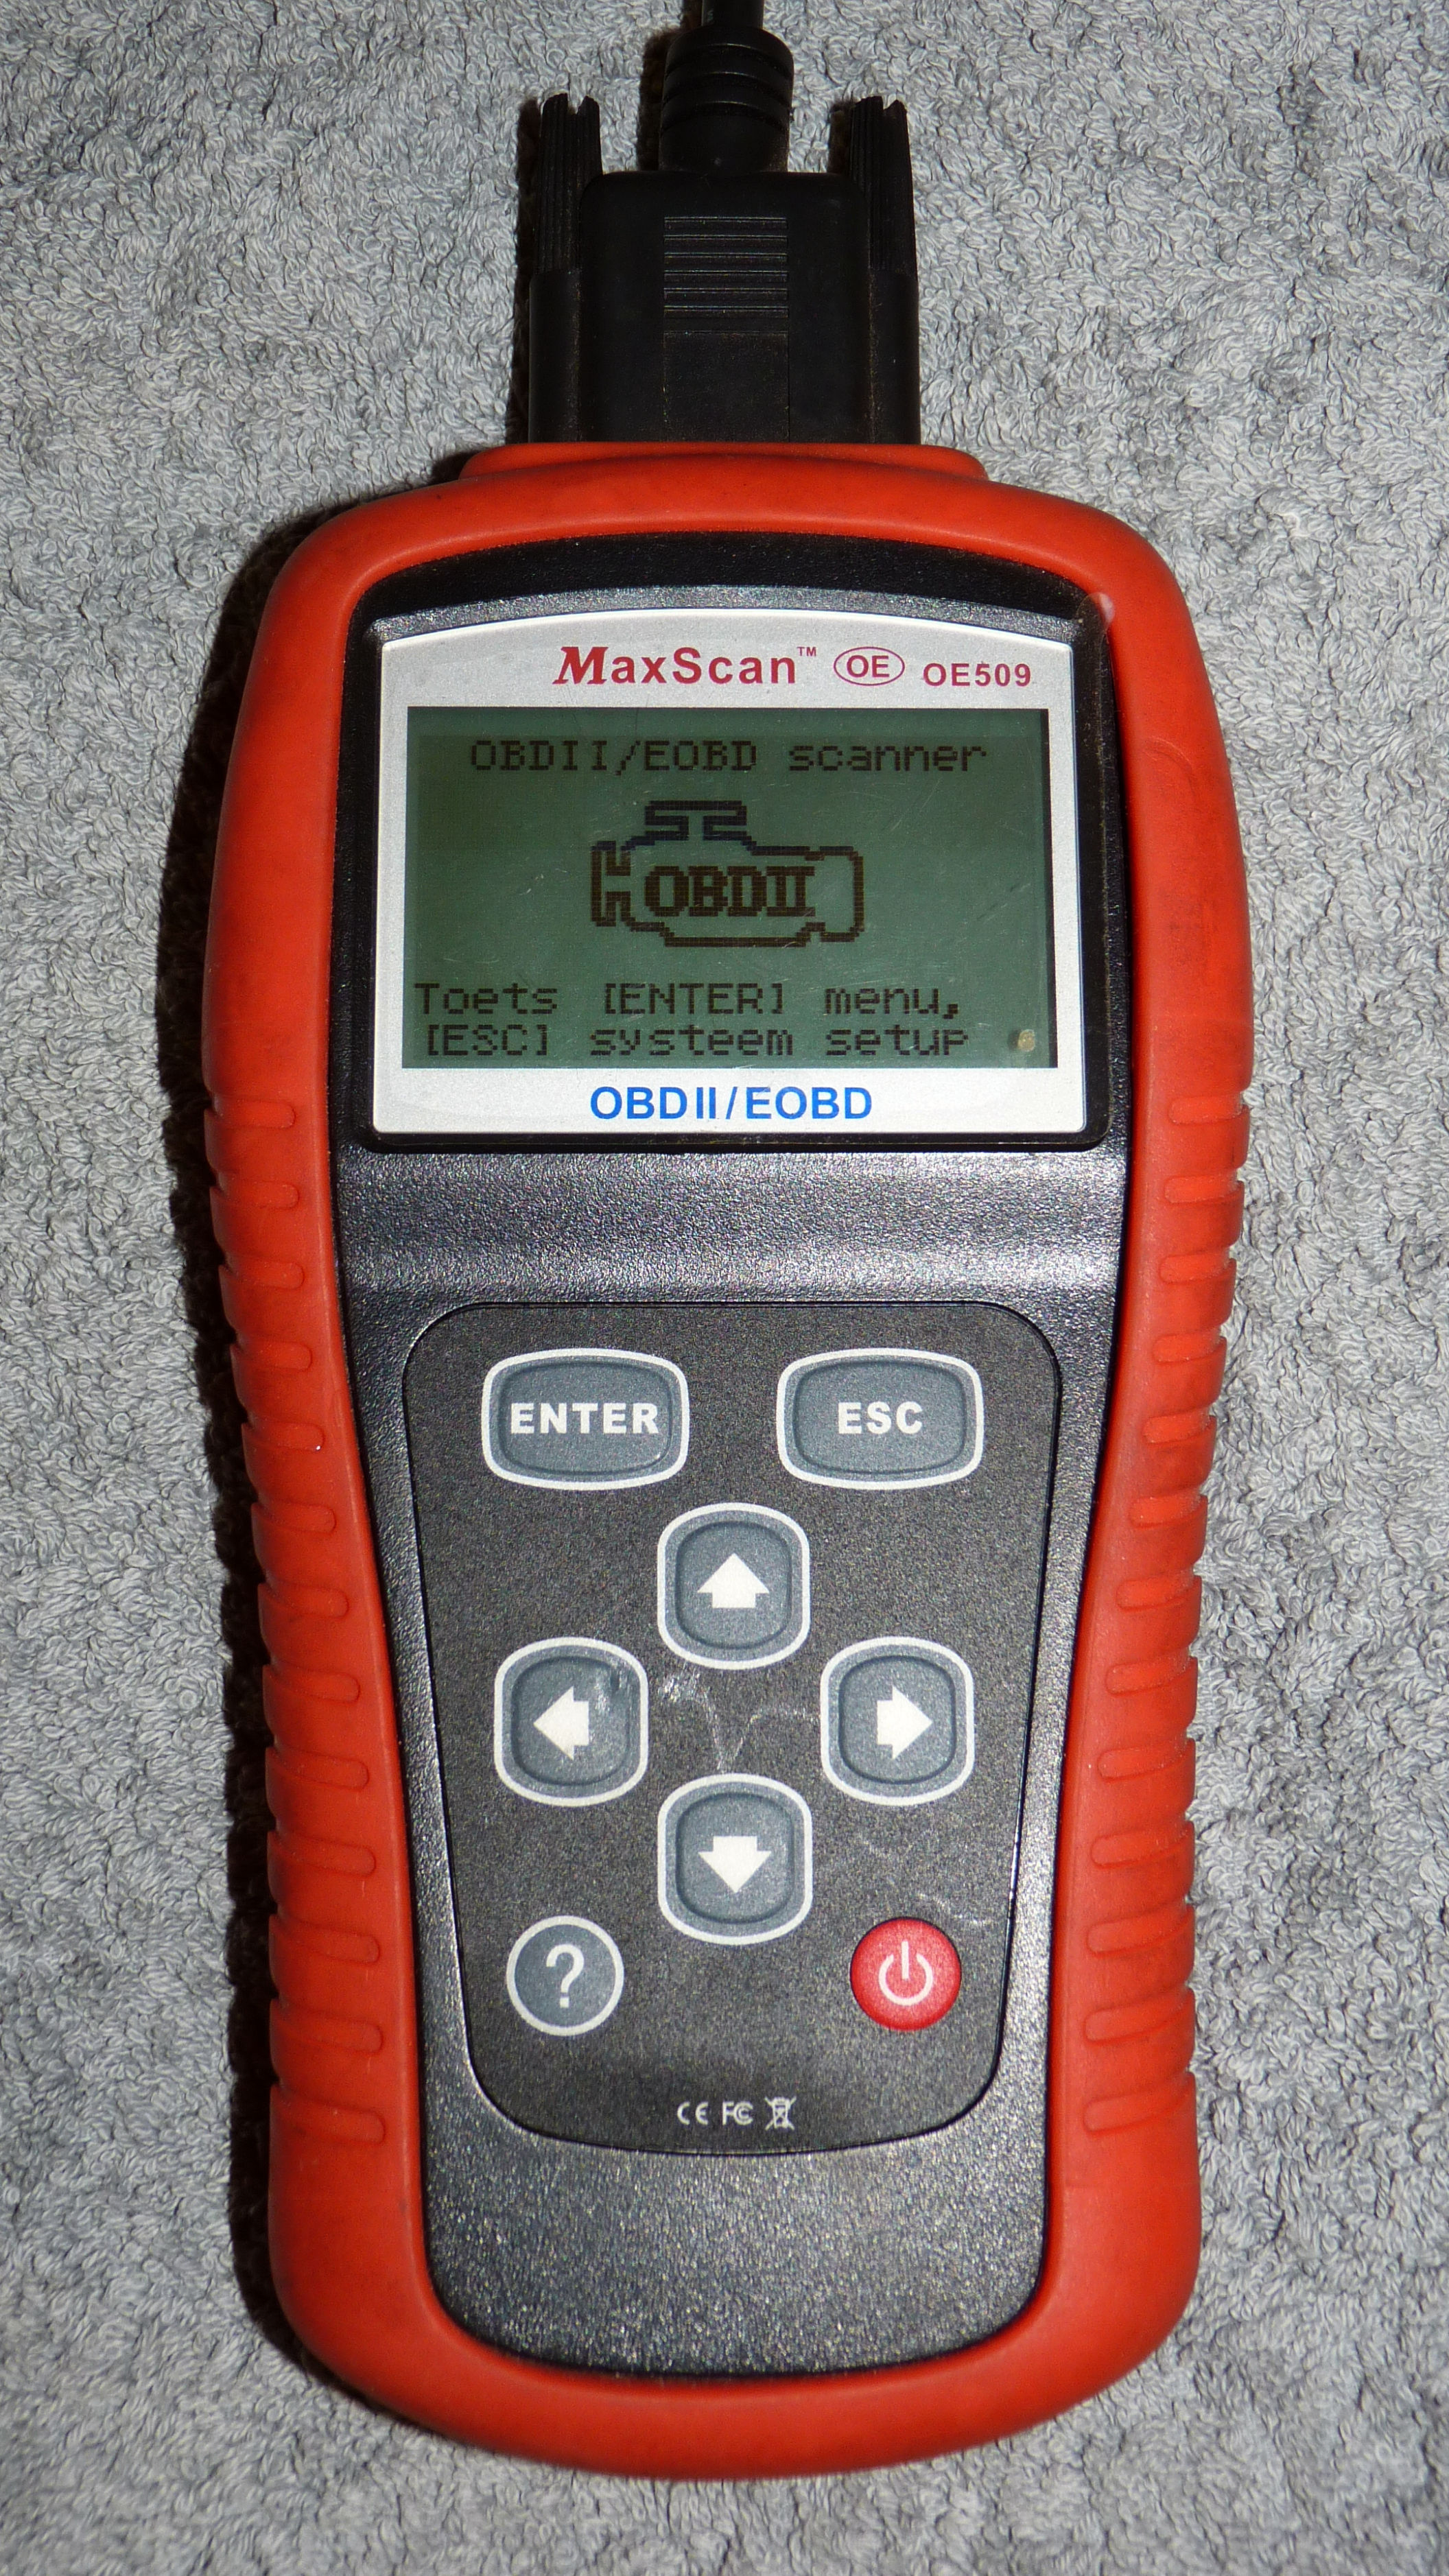 Code reader can reads codes, clear codes, and checks the status of some of the OBD2 monitors.